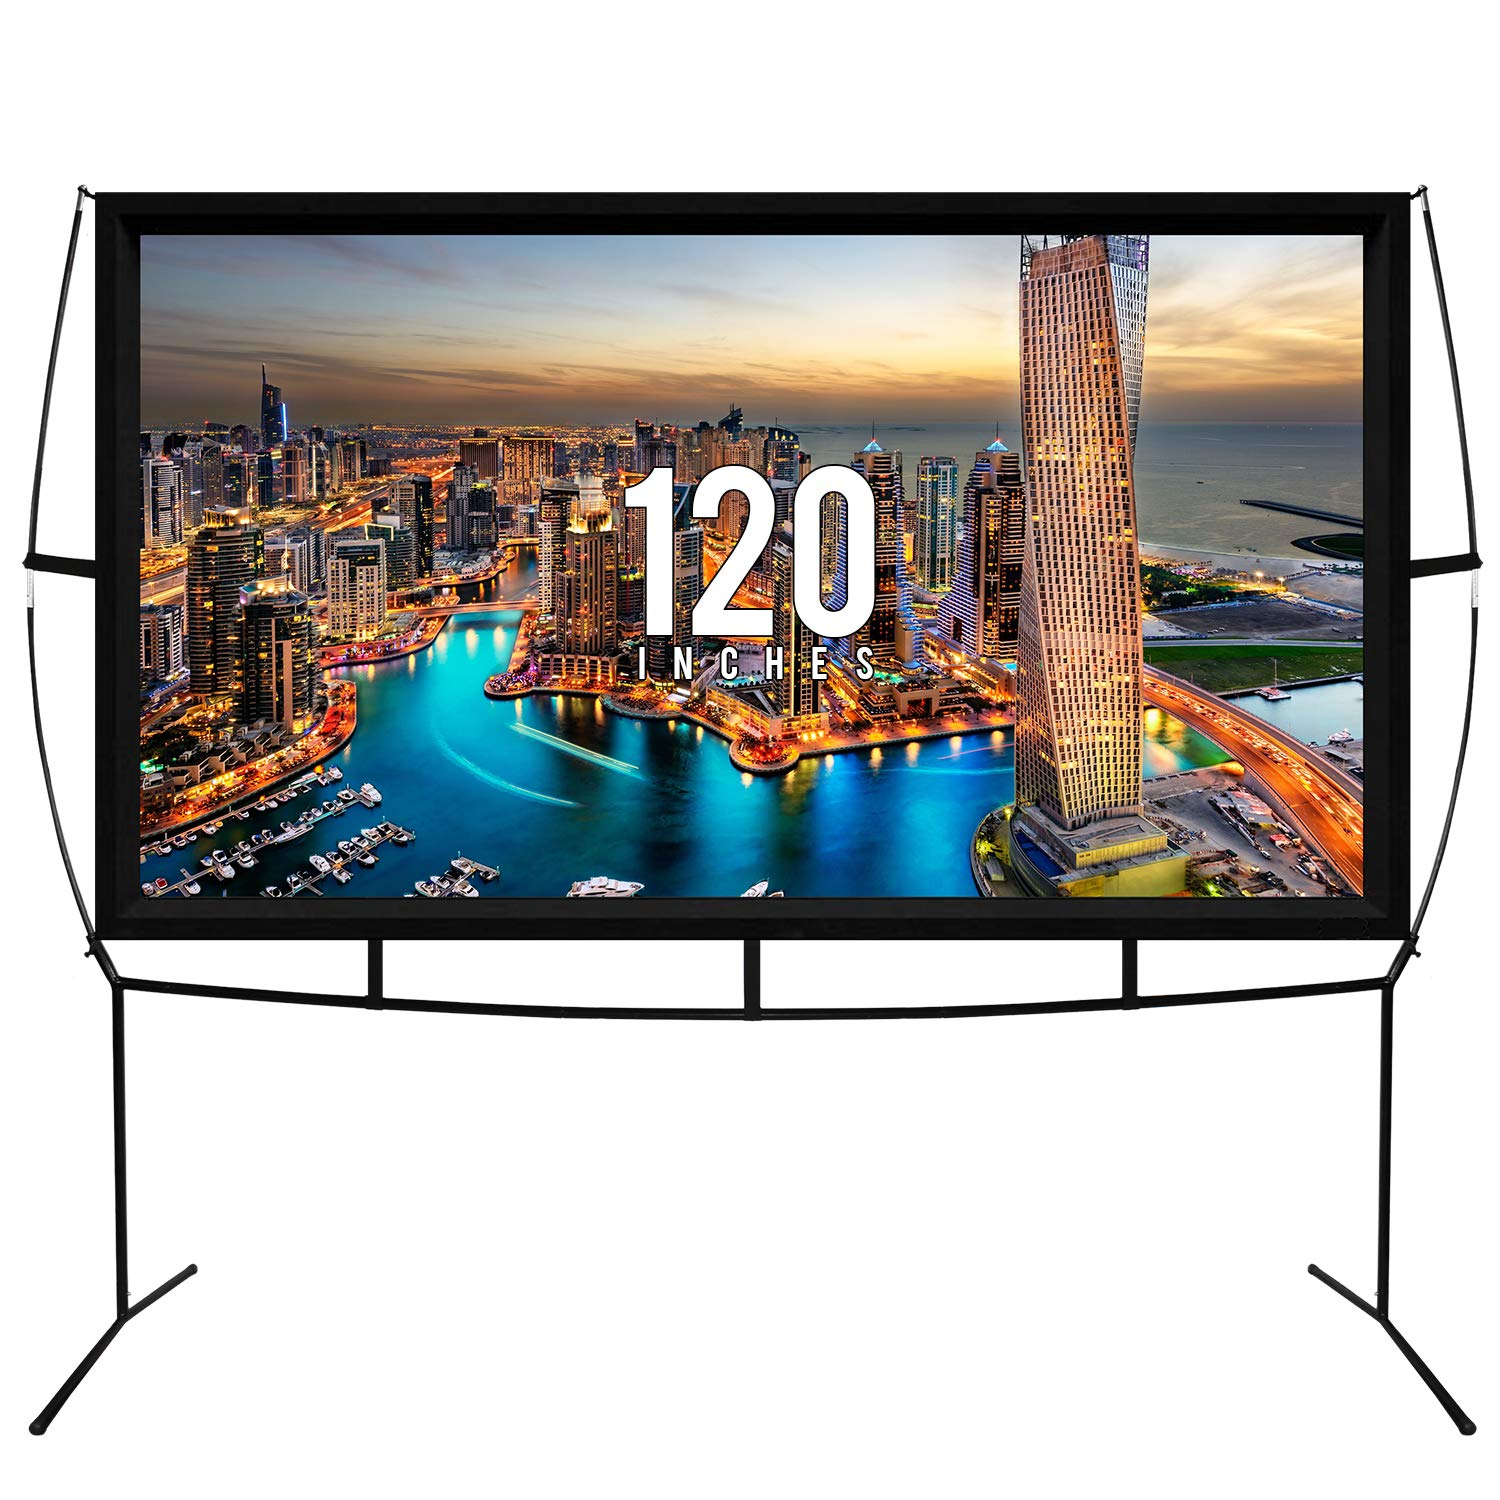 Fast Assembly Design - No Tools Needed - Jumbo 120 Inch 16:9 Portable Outdoor and Indoor Movie Theater Projector Screen with Stand Legs